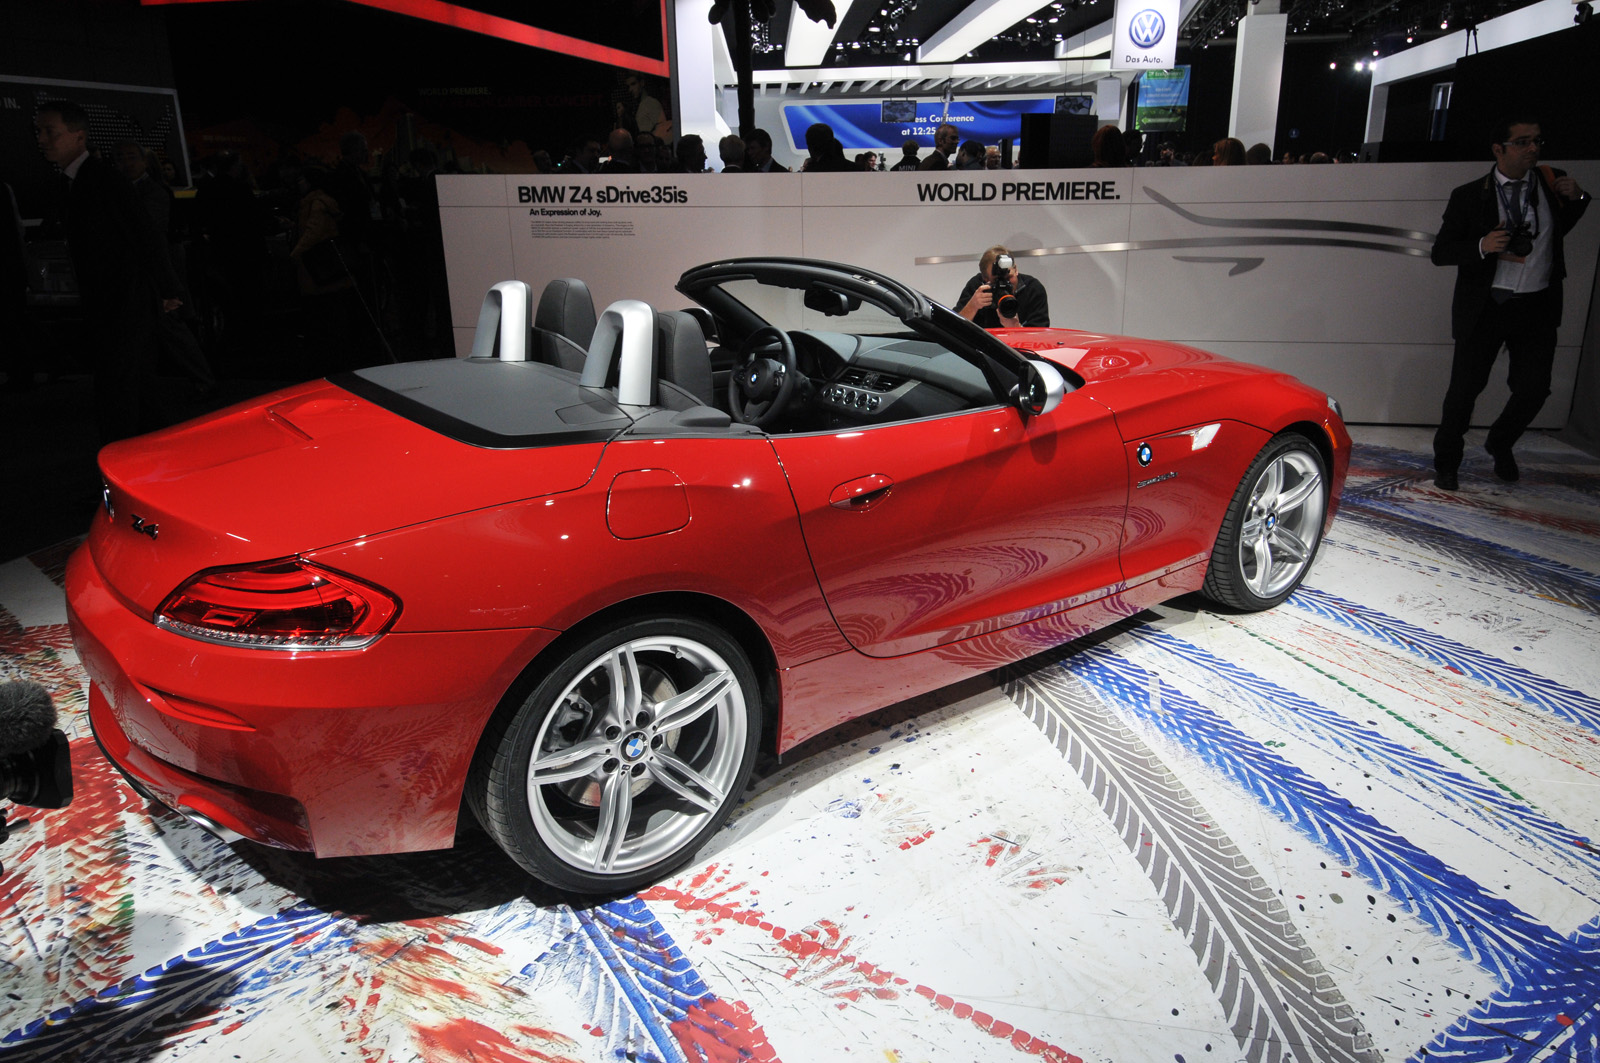 Bmw Z4 Sdrive 35is Specs Photos Videos And More On